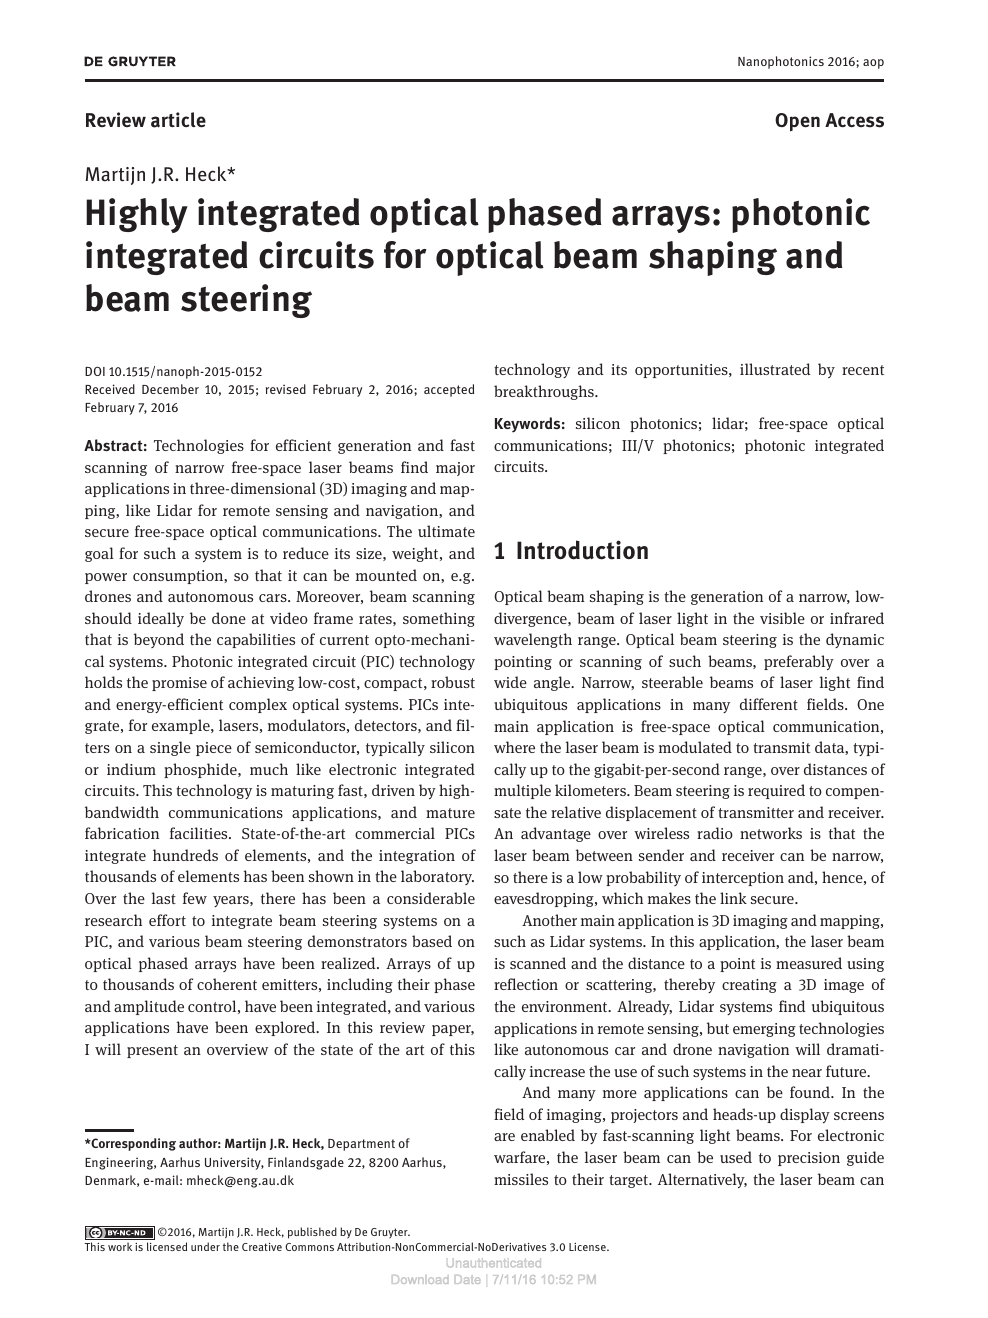 Highly integrated optical phased arrays: photonic integrated